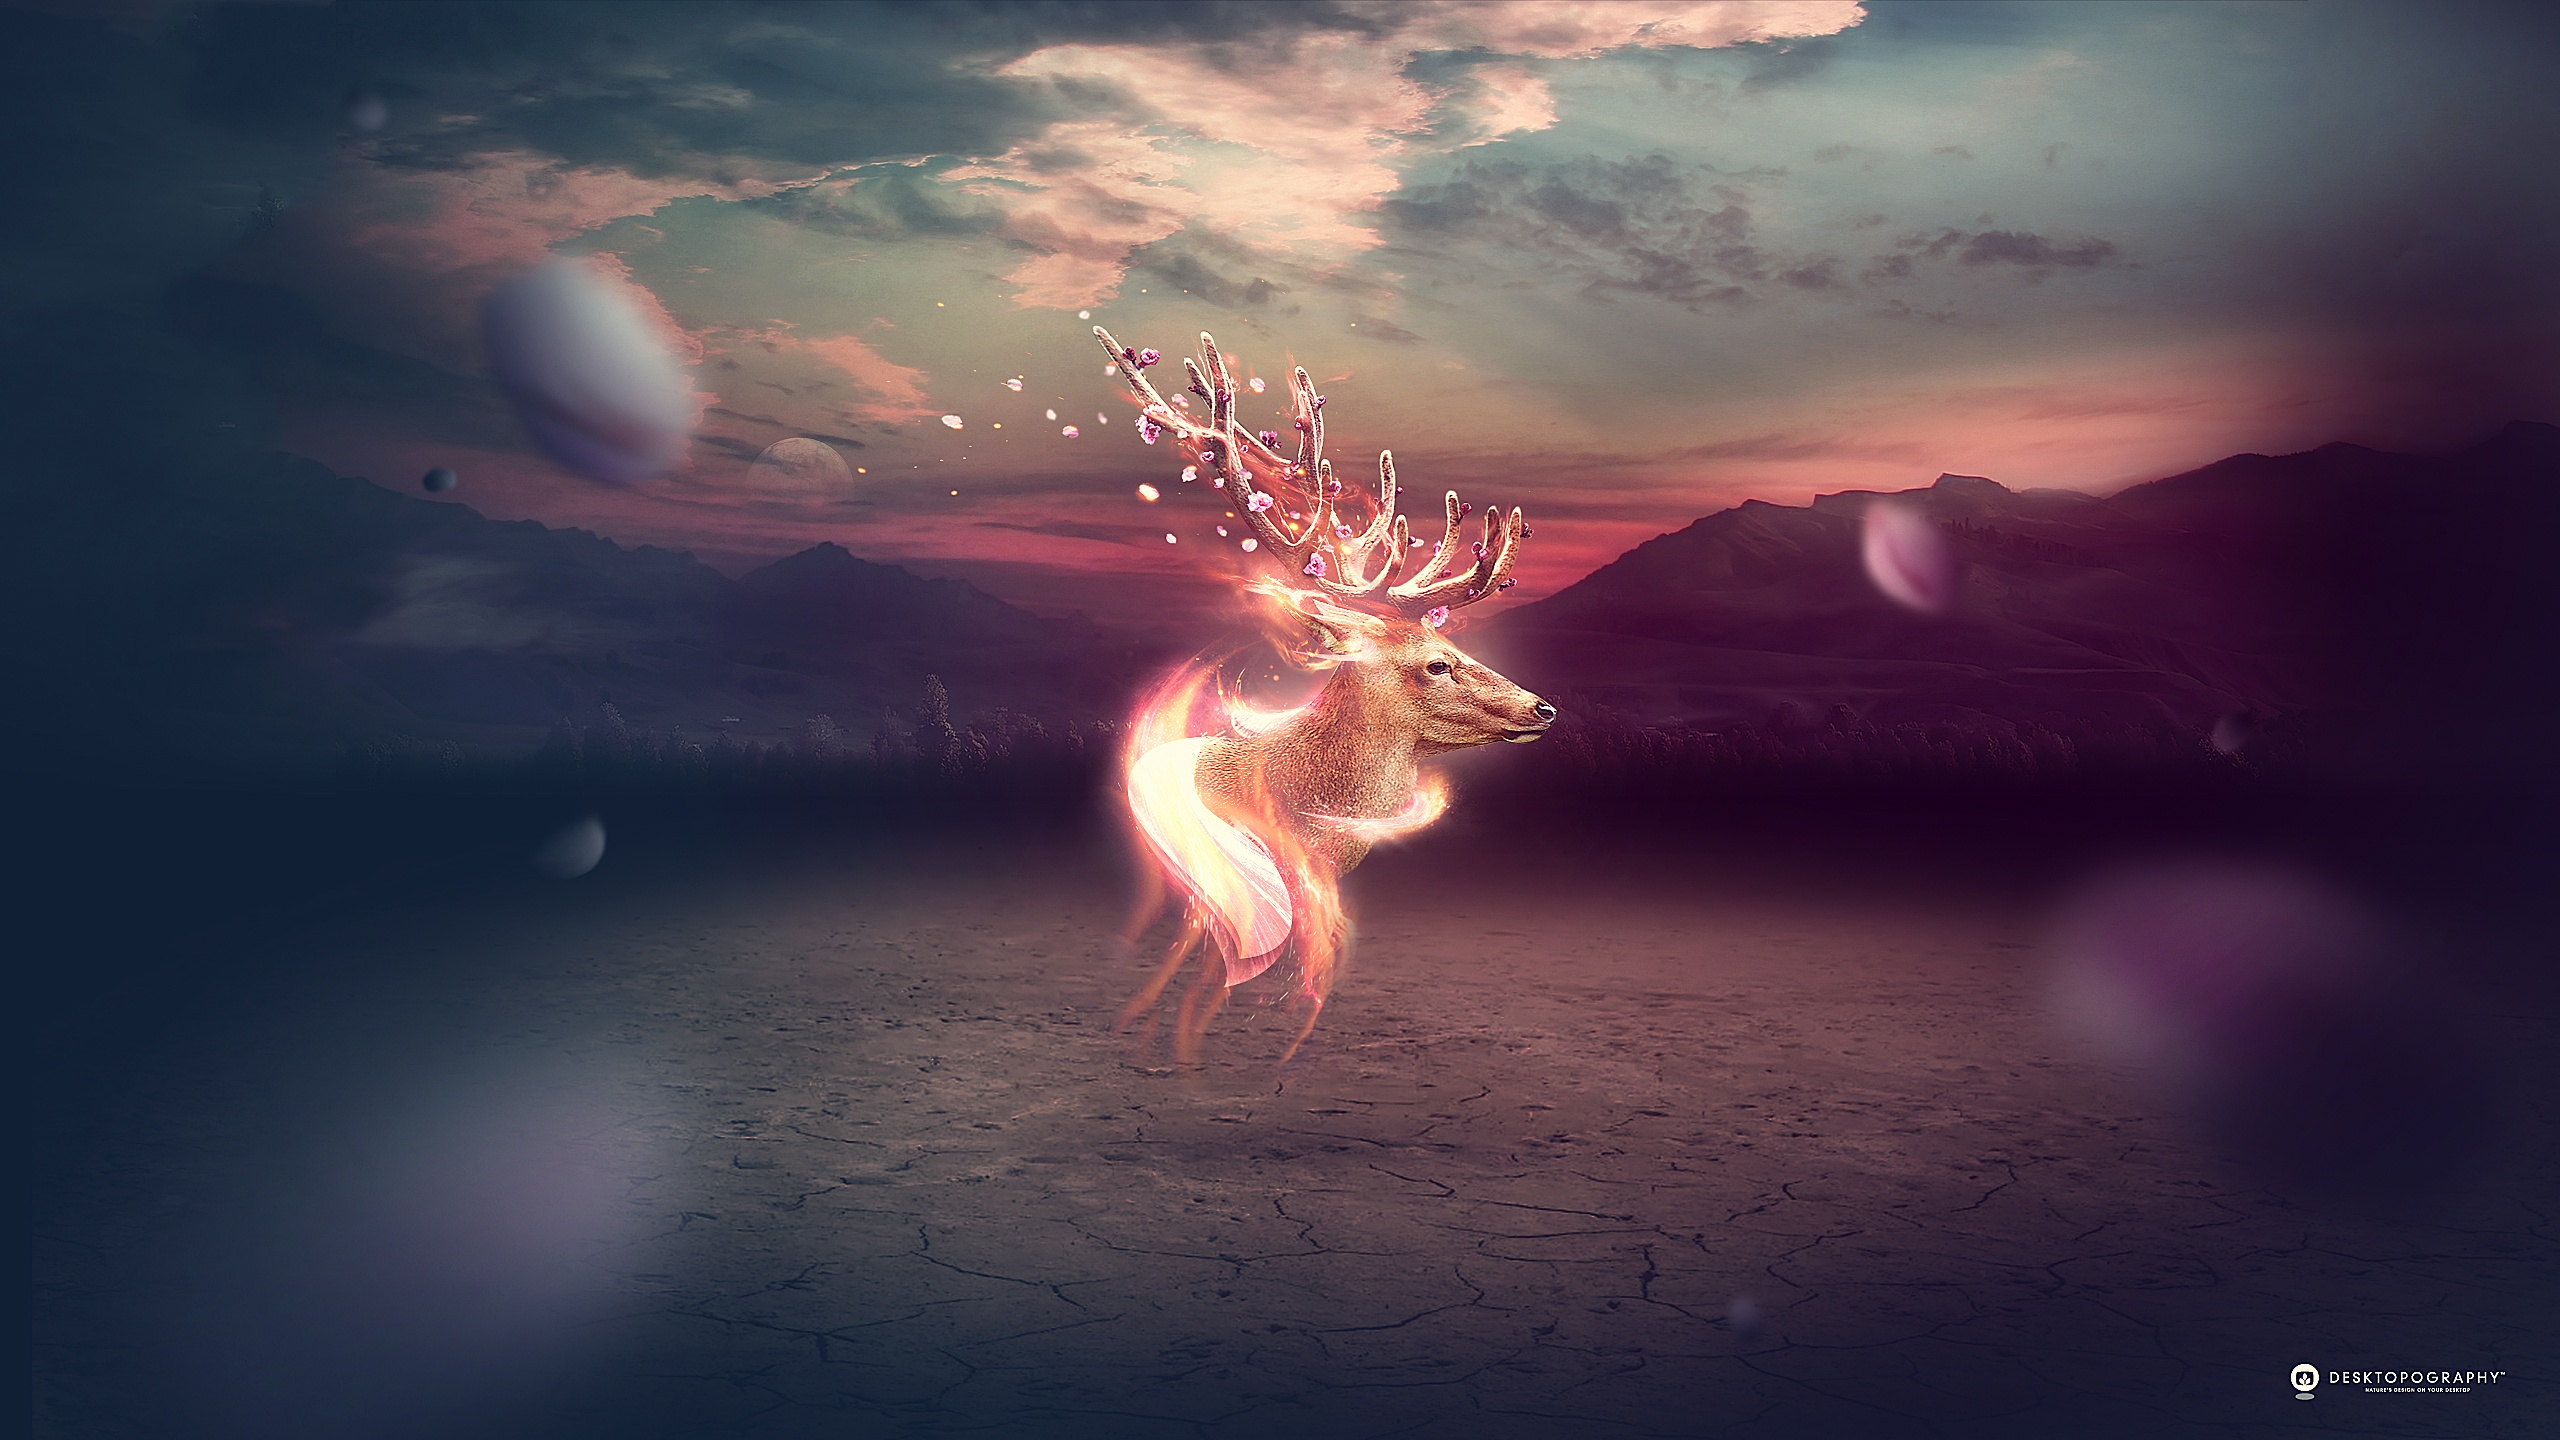 Deer hd wallpaper background image 2560x1440 id - Fantasy wallpaper pc ...